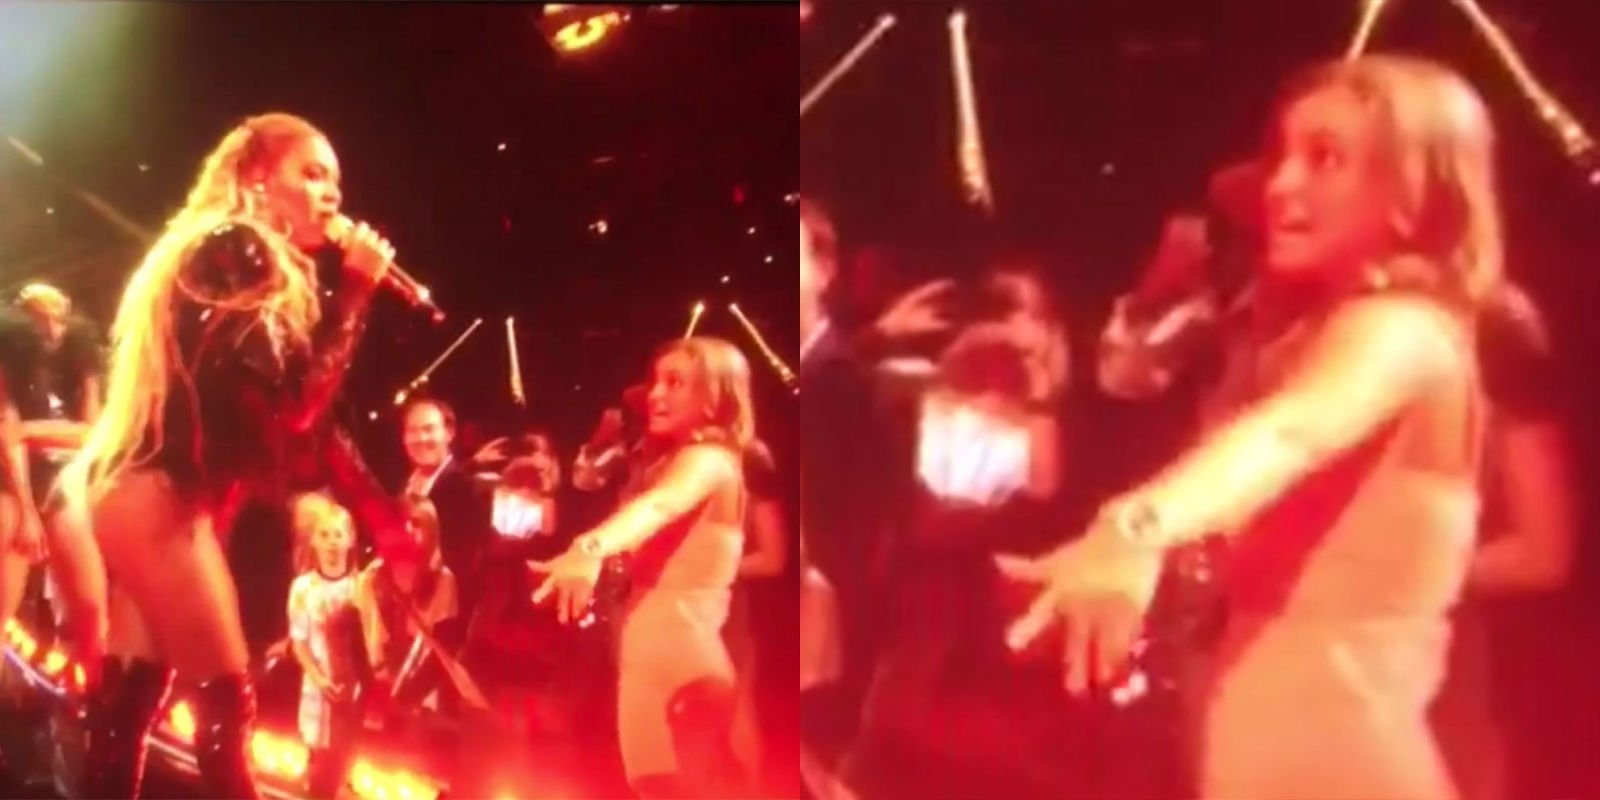 This Girl Dancing Next to Beyoncé Performing at the VMAs Is All Of Us https://t.co/ygIrGPPTKR #VMAs https://t.co/VzMG2xGju1